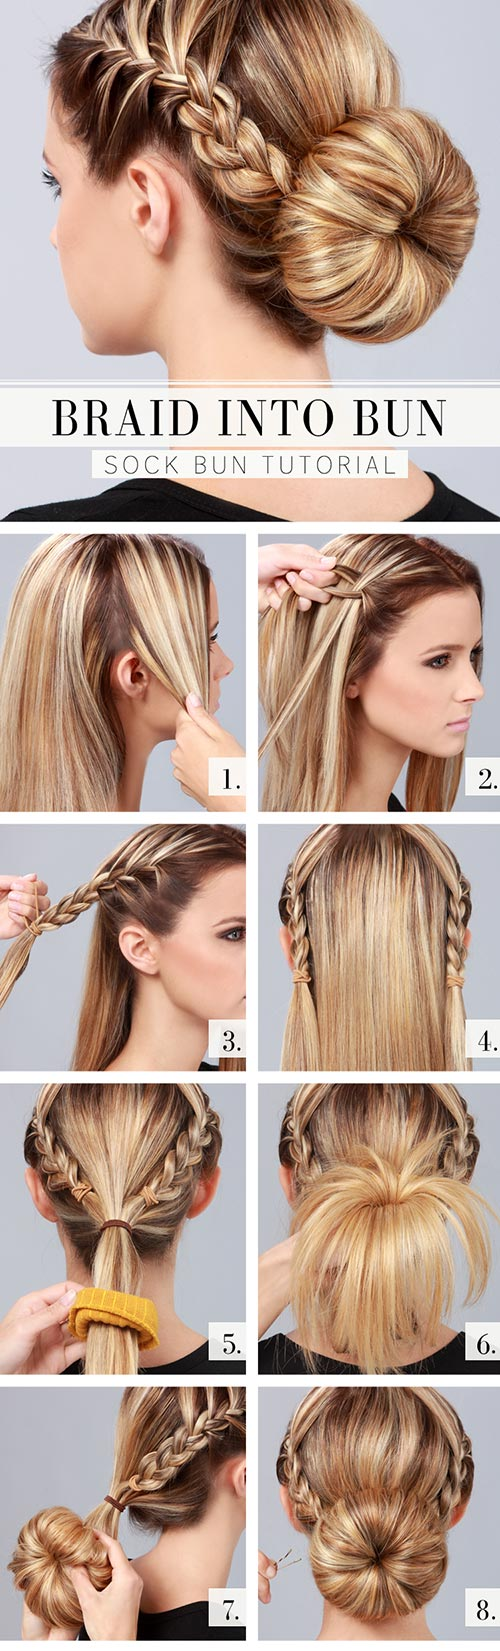 Super Simple Hairstyle Tutorials For Every Occasion Beauty Tips Hair Care Short Hairstyles Gunalazisus